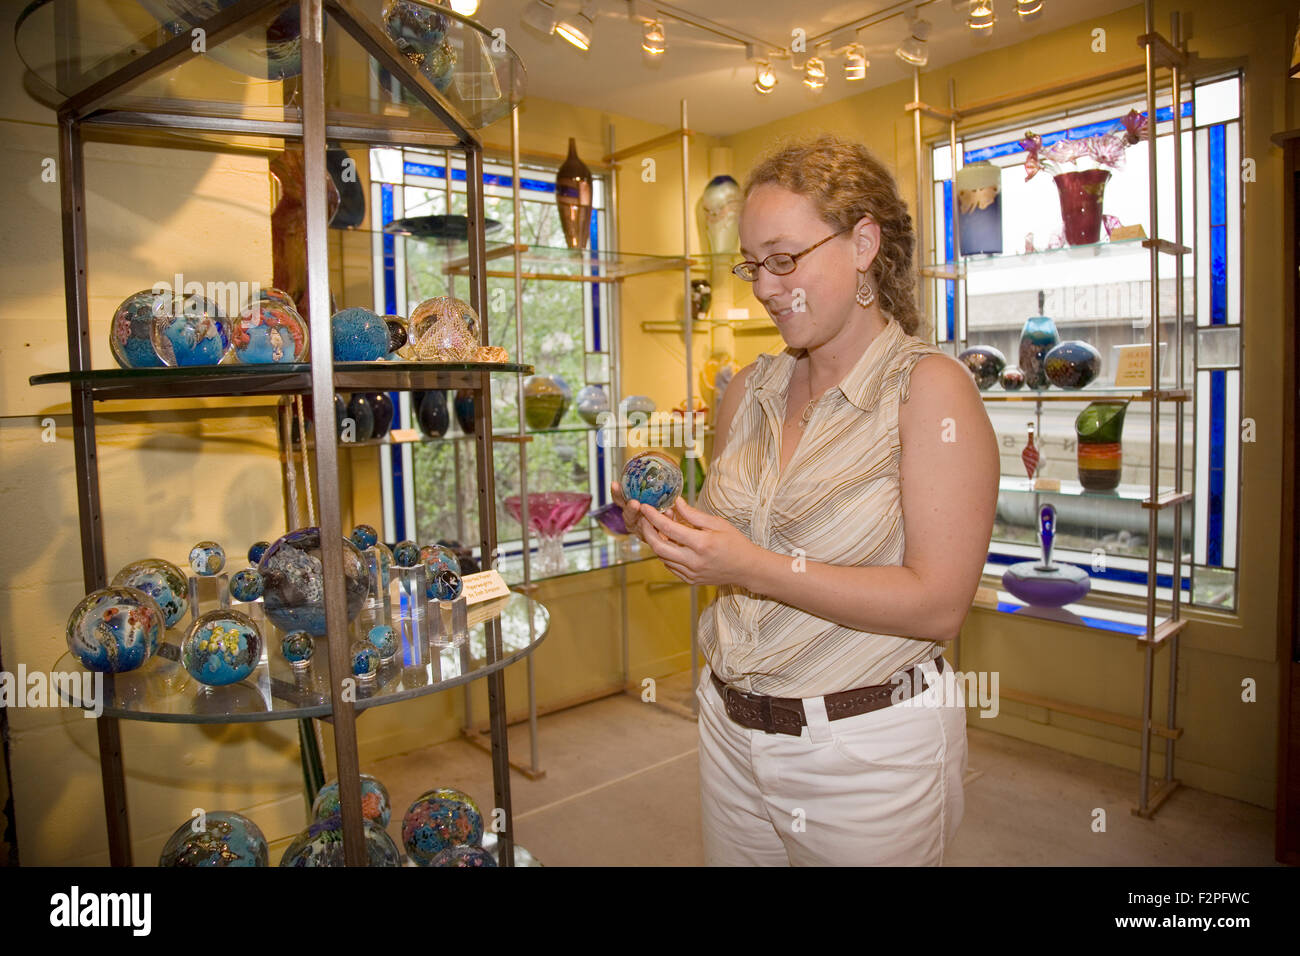 Stowe Craft Gallery & Design Center, featuring Stowe area artists like  Josh Simpson who produces hand blown art Stock Photo